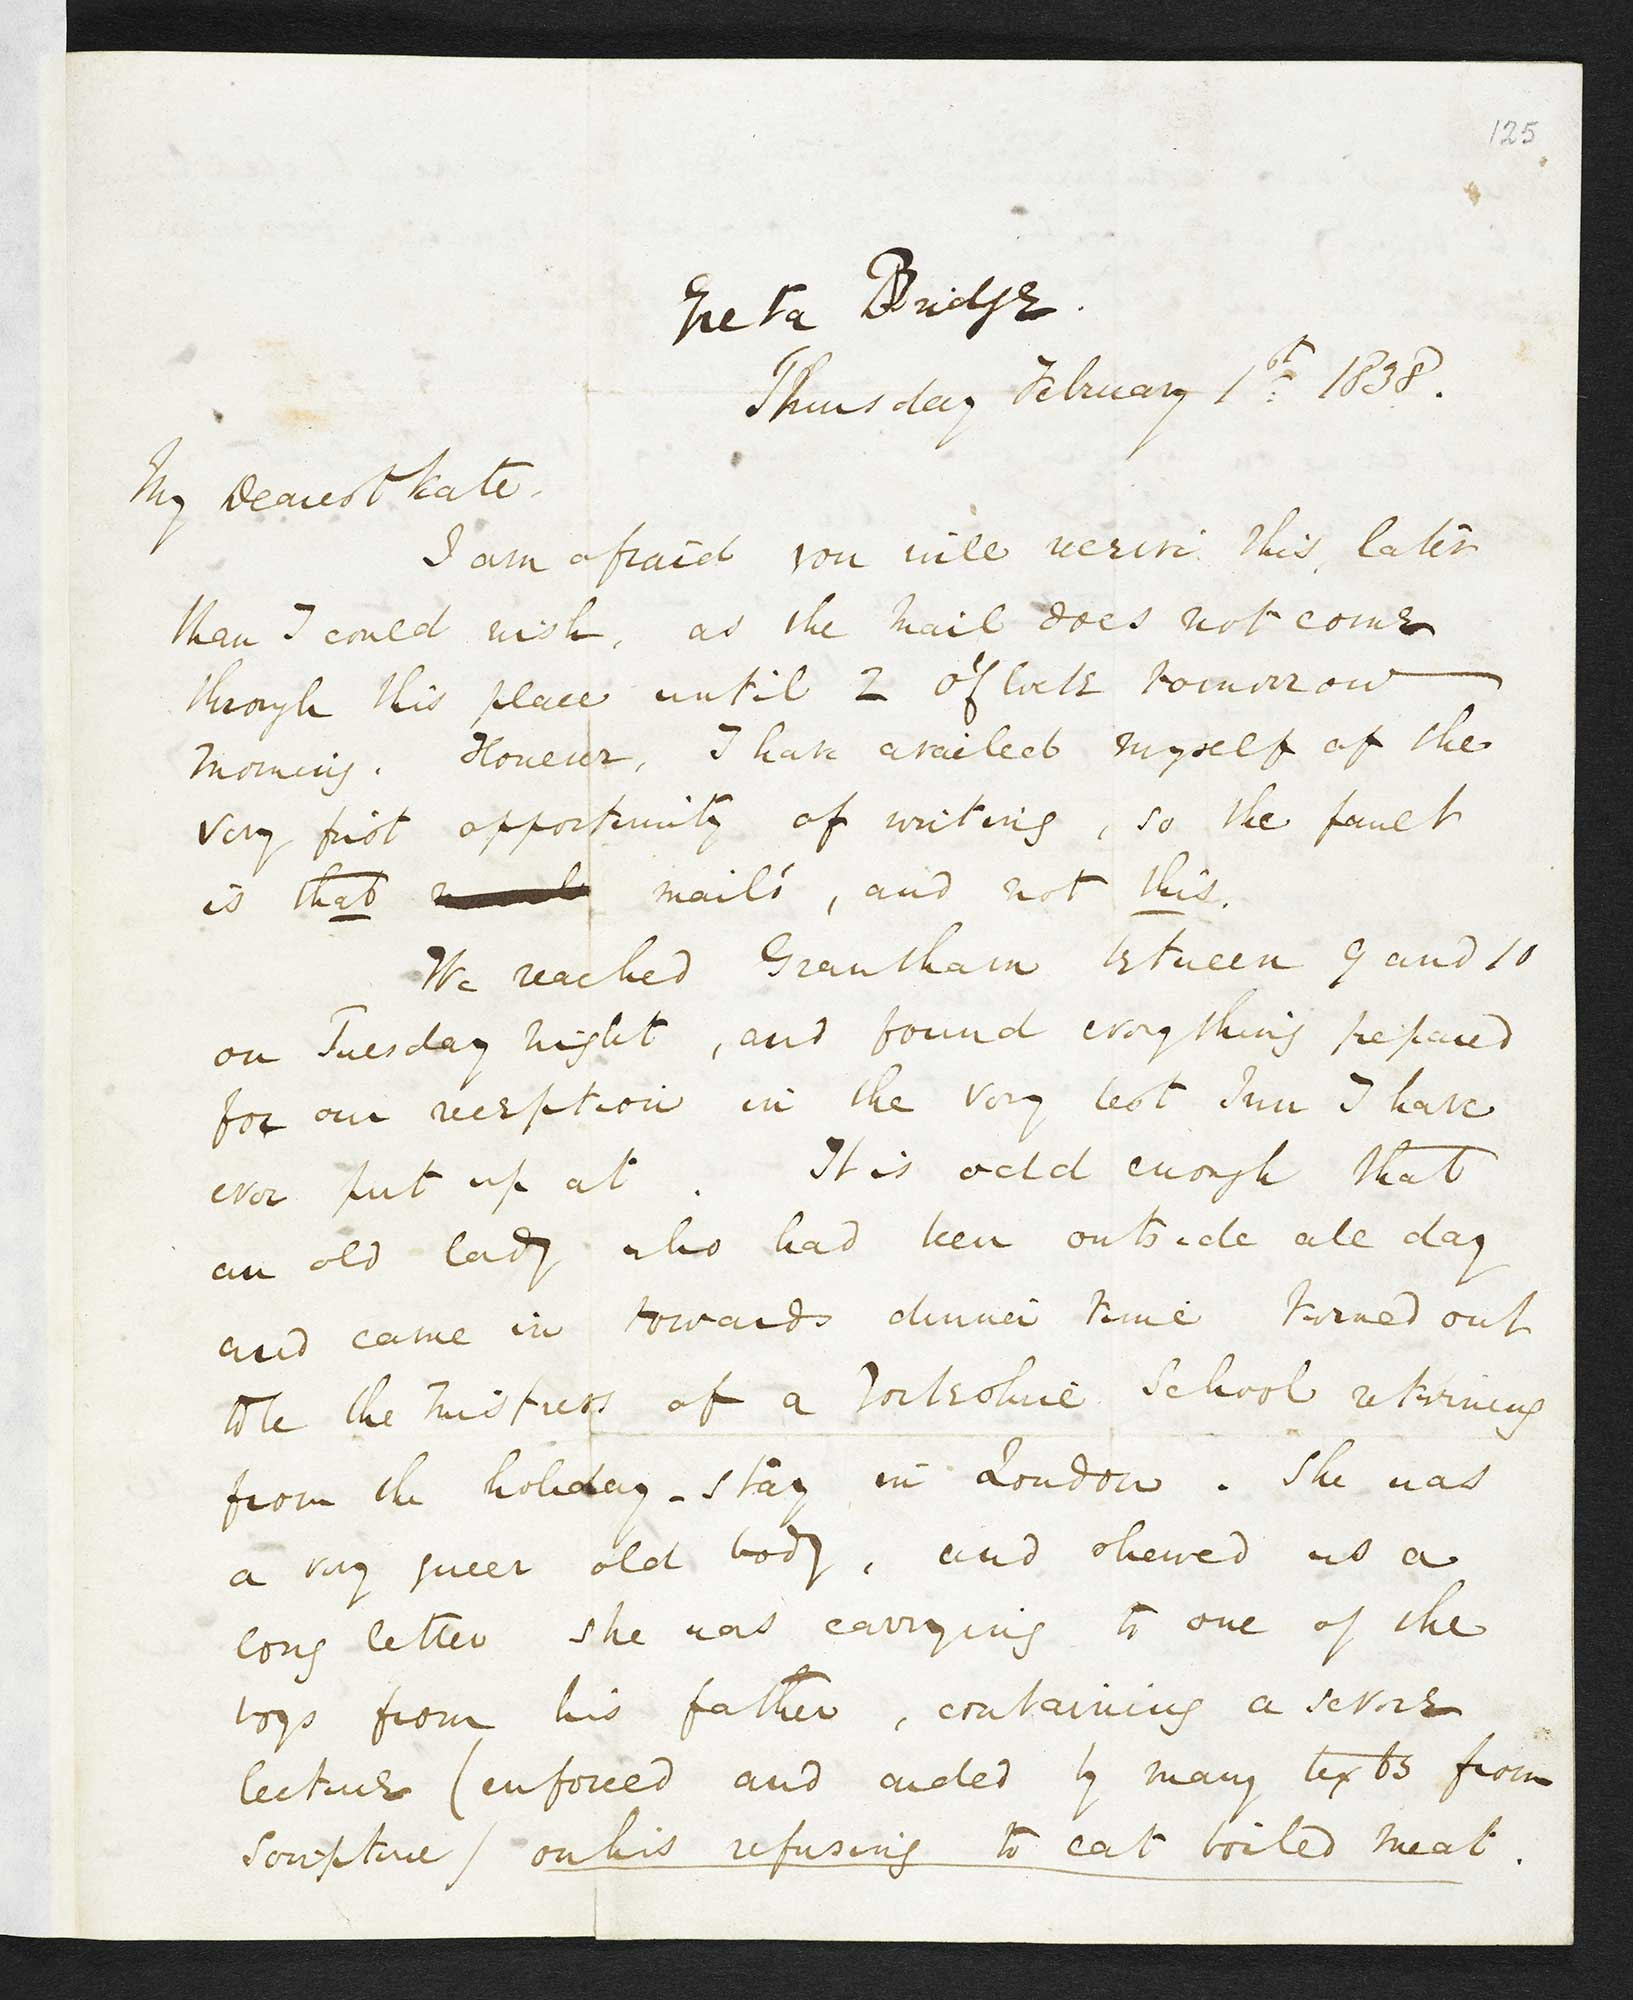 Letter about Yorkshire schools from Charles Dickens to his wife Catherine, 1 February 1838 [folio: 125r]